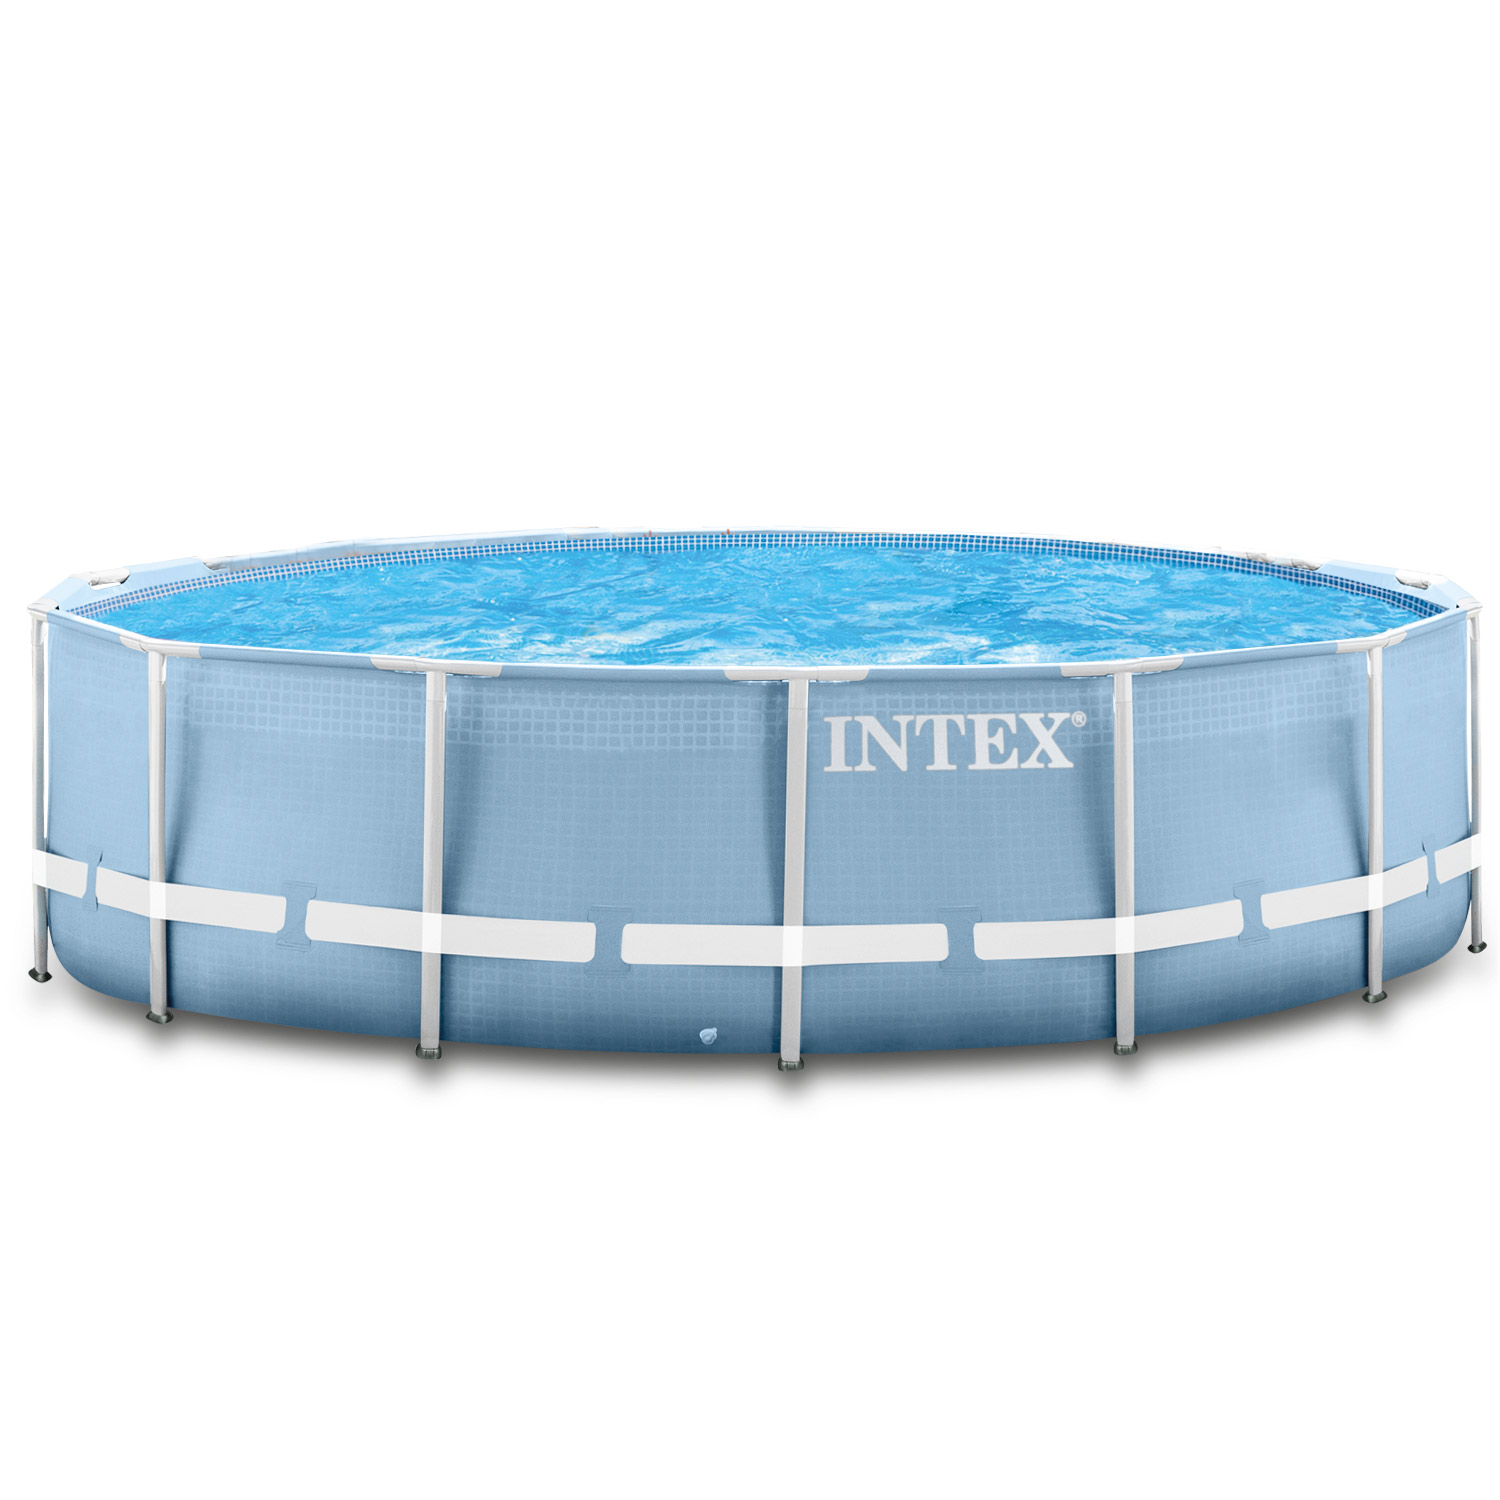 Intex piscine autoportante swimming pool rotondo 366x122 for Epaisseur liner piscine